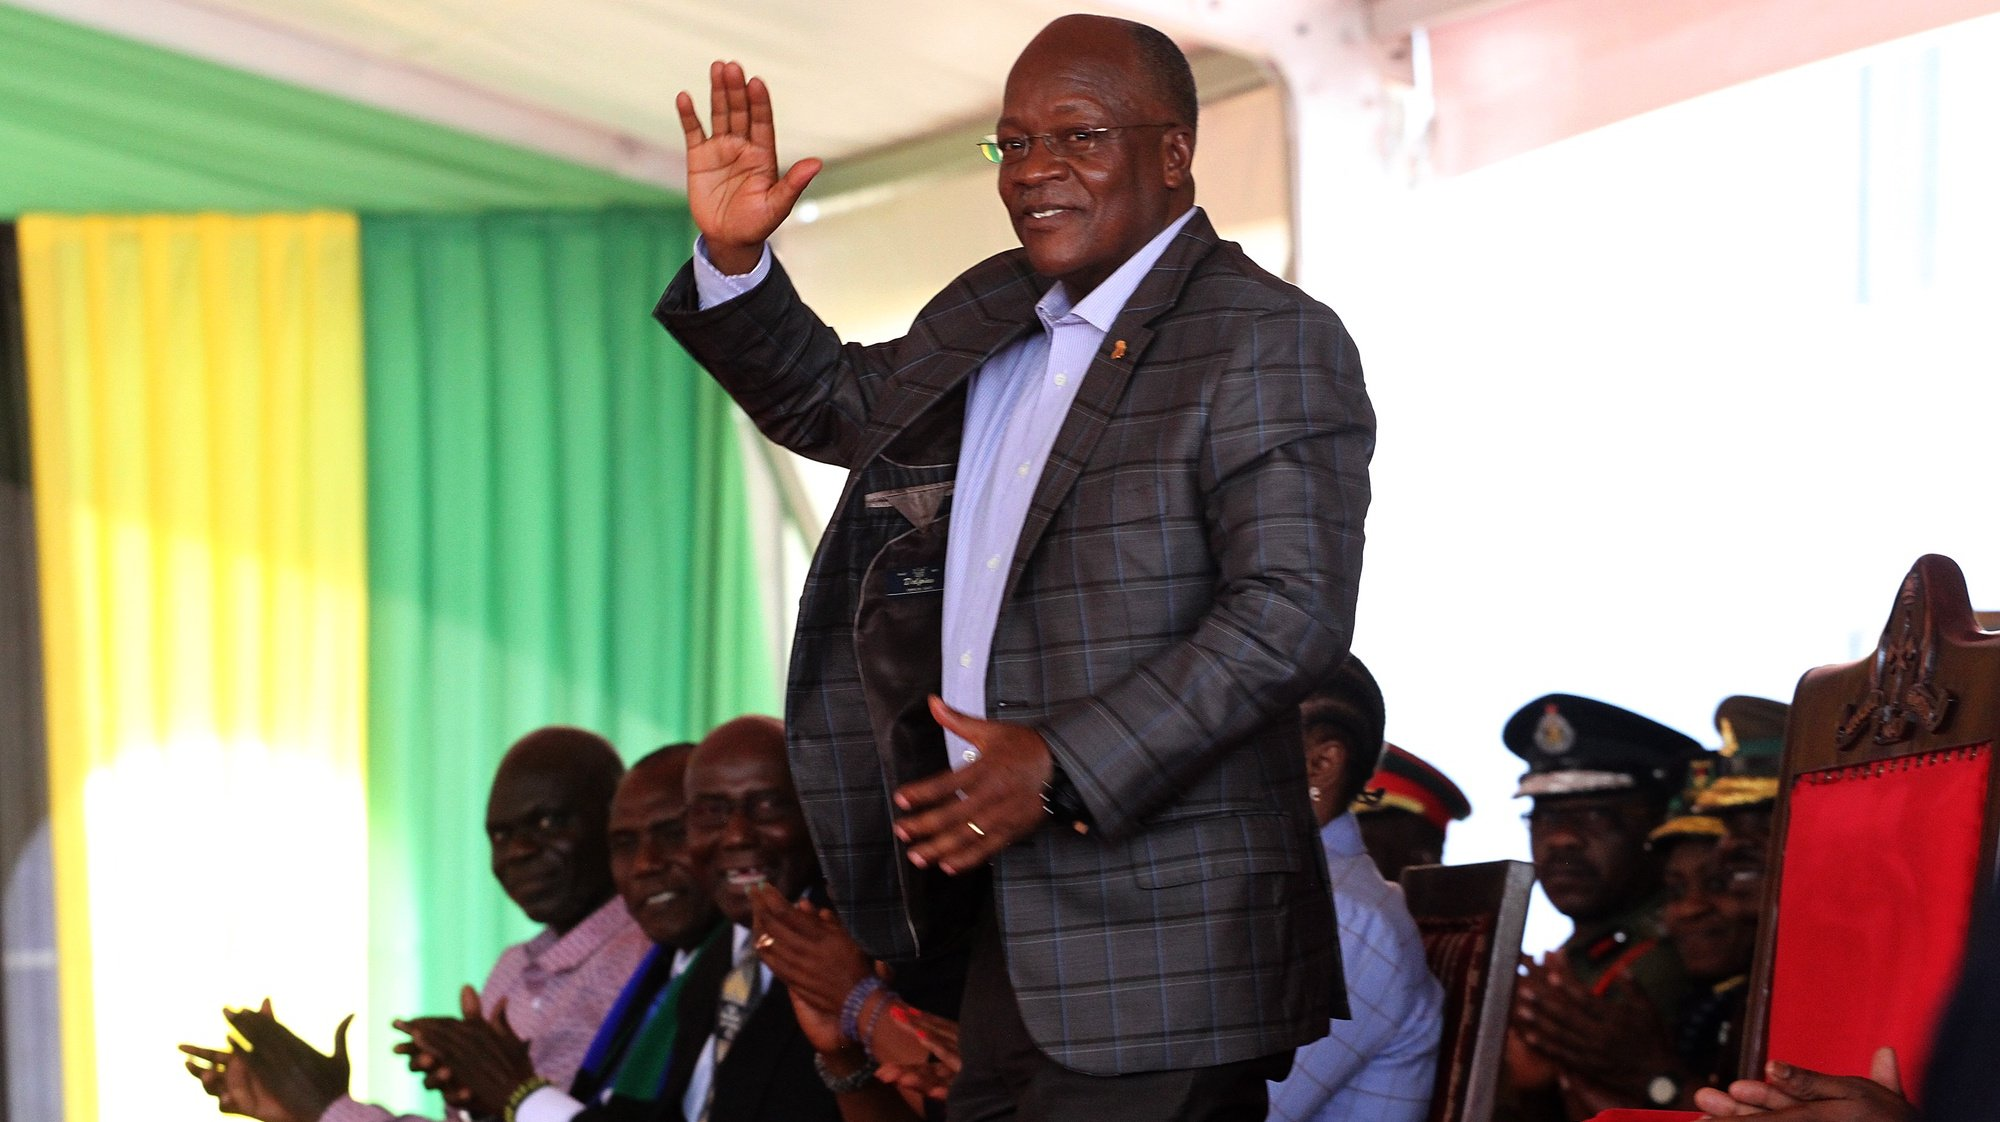 epa08790463 President John Magufuli (C) formally accepts presidential winner's certificate after winning another 5 year term after the recent elections, Dodoam, Tanzania,  01 November 2020. Incumbent President John Magufuli won in a crowded field of 15 contenders. He is the candidate of the Chama Cha Mapinduzi (CCM) party which has led Tanzania since independence in 1961.  EPA/ANTHONY SIAME